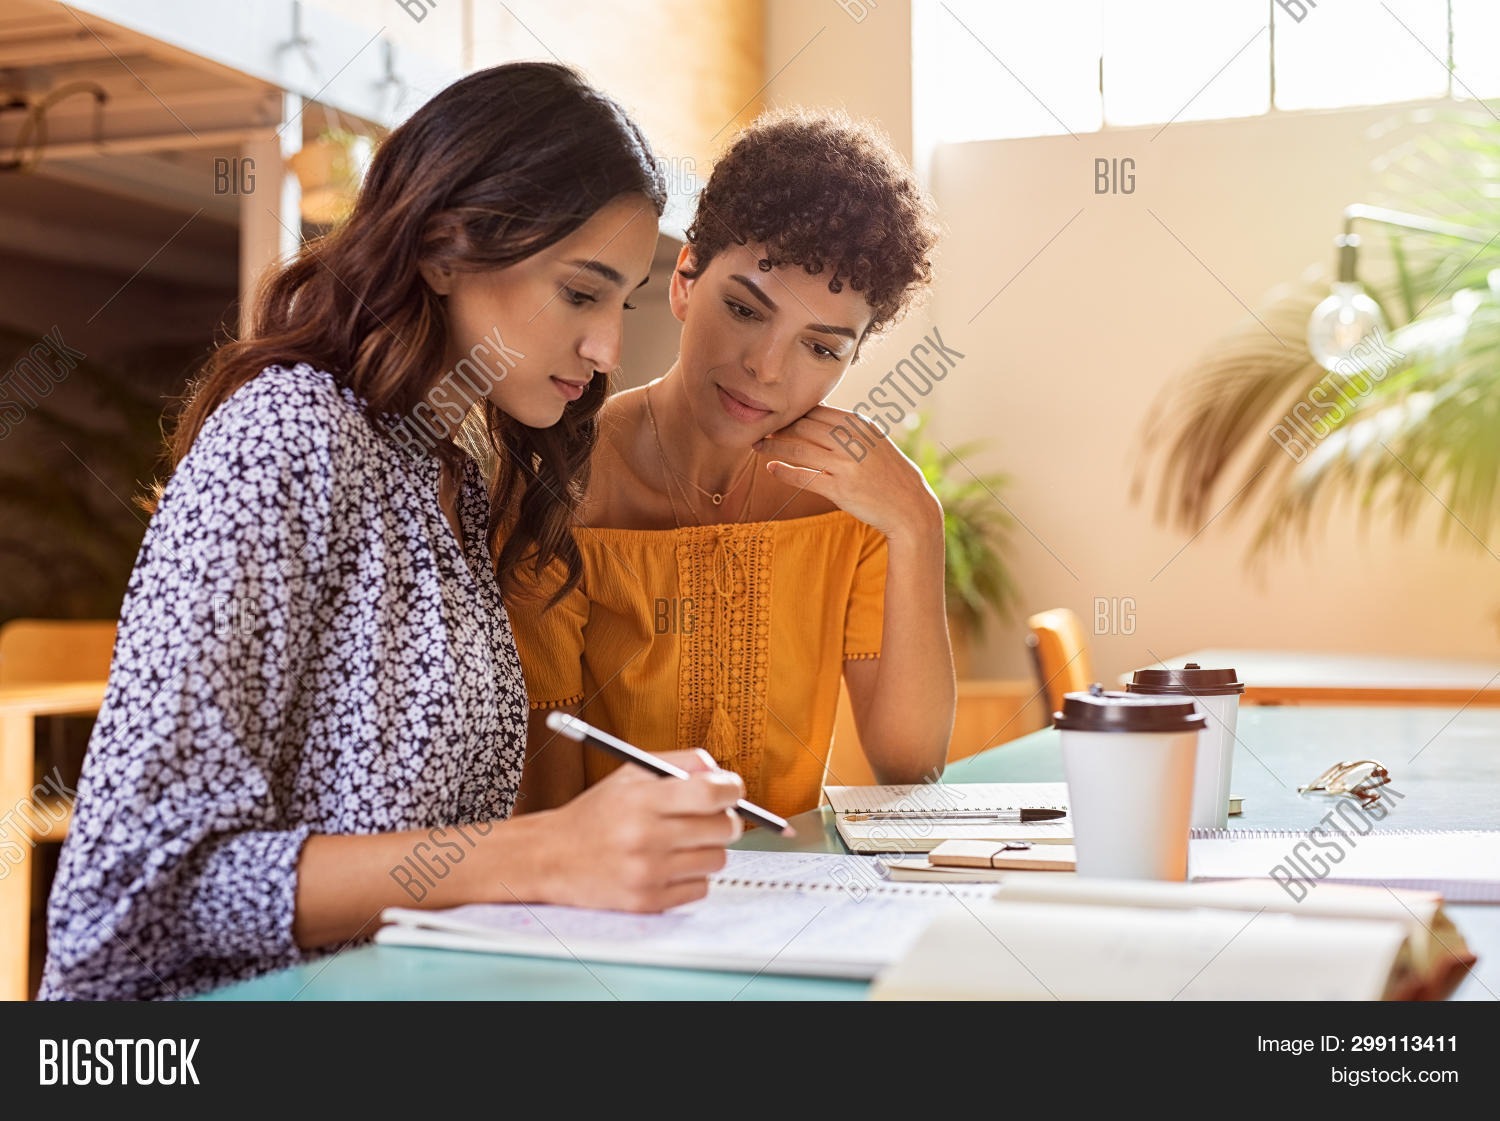 book,brazilian,brazilian woman,cafeteria,campus,campus students,casual,coffee,coffee shop,college,concentrated,desk,education,friendship,girl,high school,high school students,hispanic,homework,knowledge,latin,learning,lesson planning,library,multi ethnic group,note,notebook,preparation,reading,shop,sitting,student,students,study,studying,studying together,stylish,taking notes,teaching,teamwork,together,university,university campus,university students,woman,woman explaining,working,writing,young,young woman